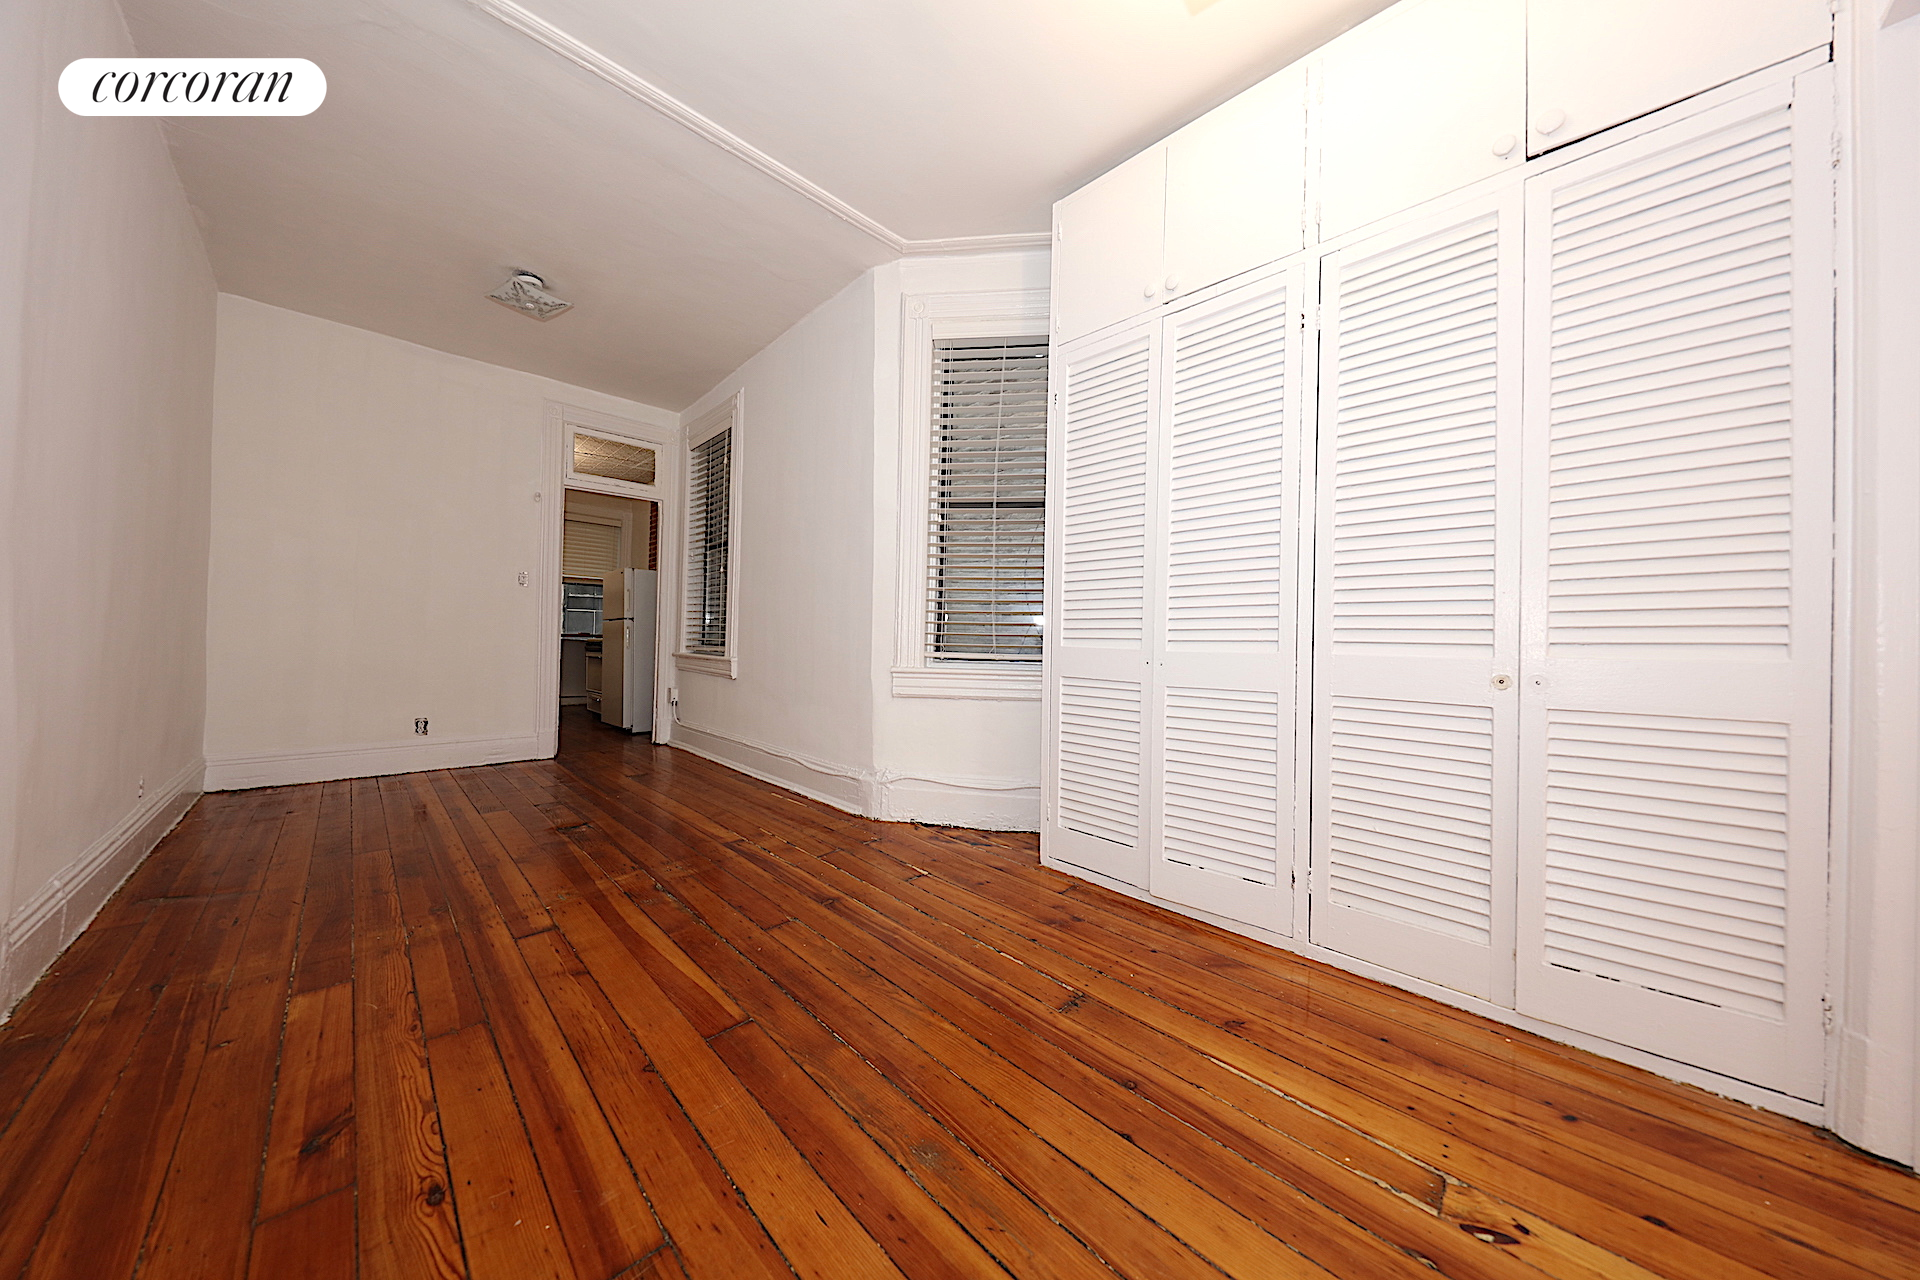 268 West 12th Street, 2W, Bedroom